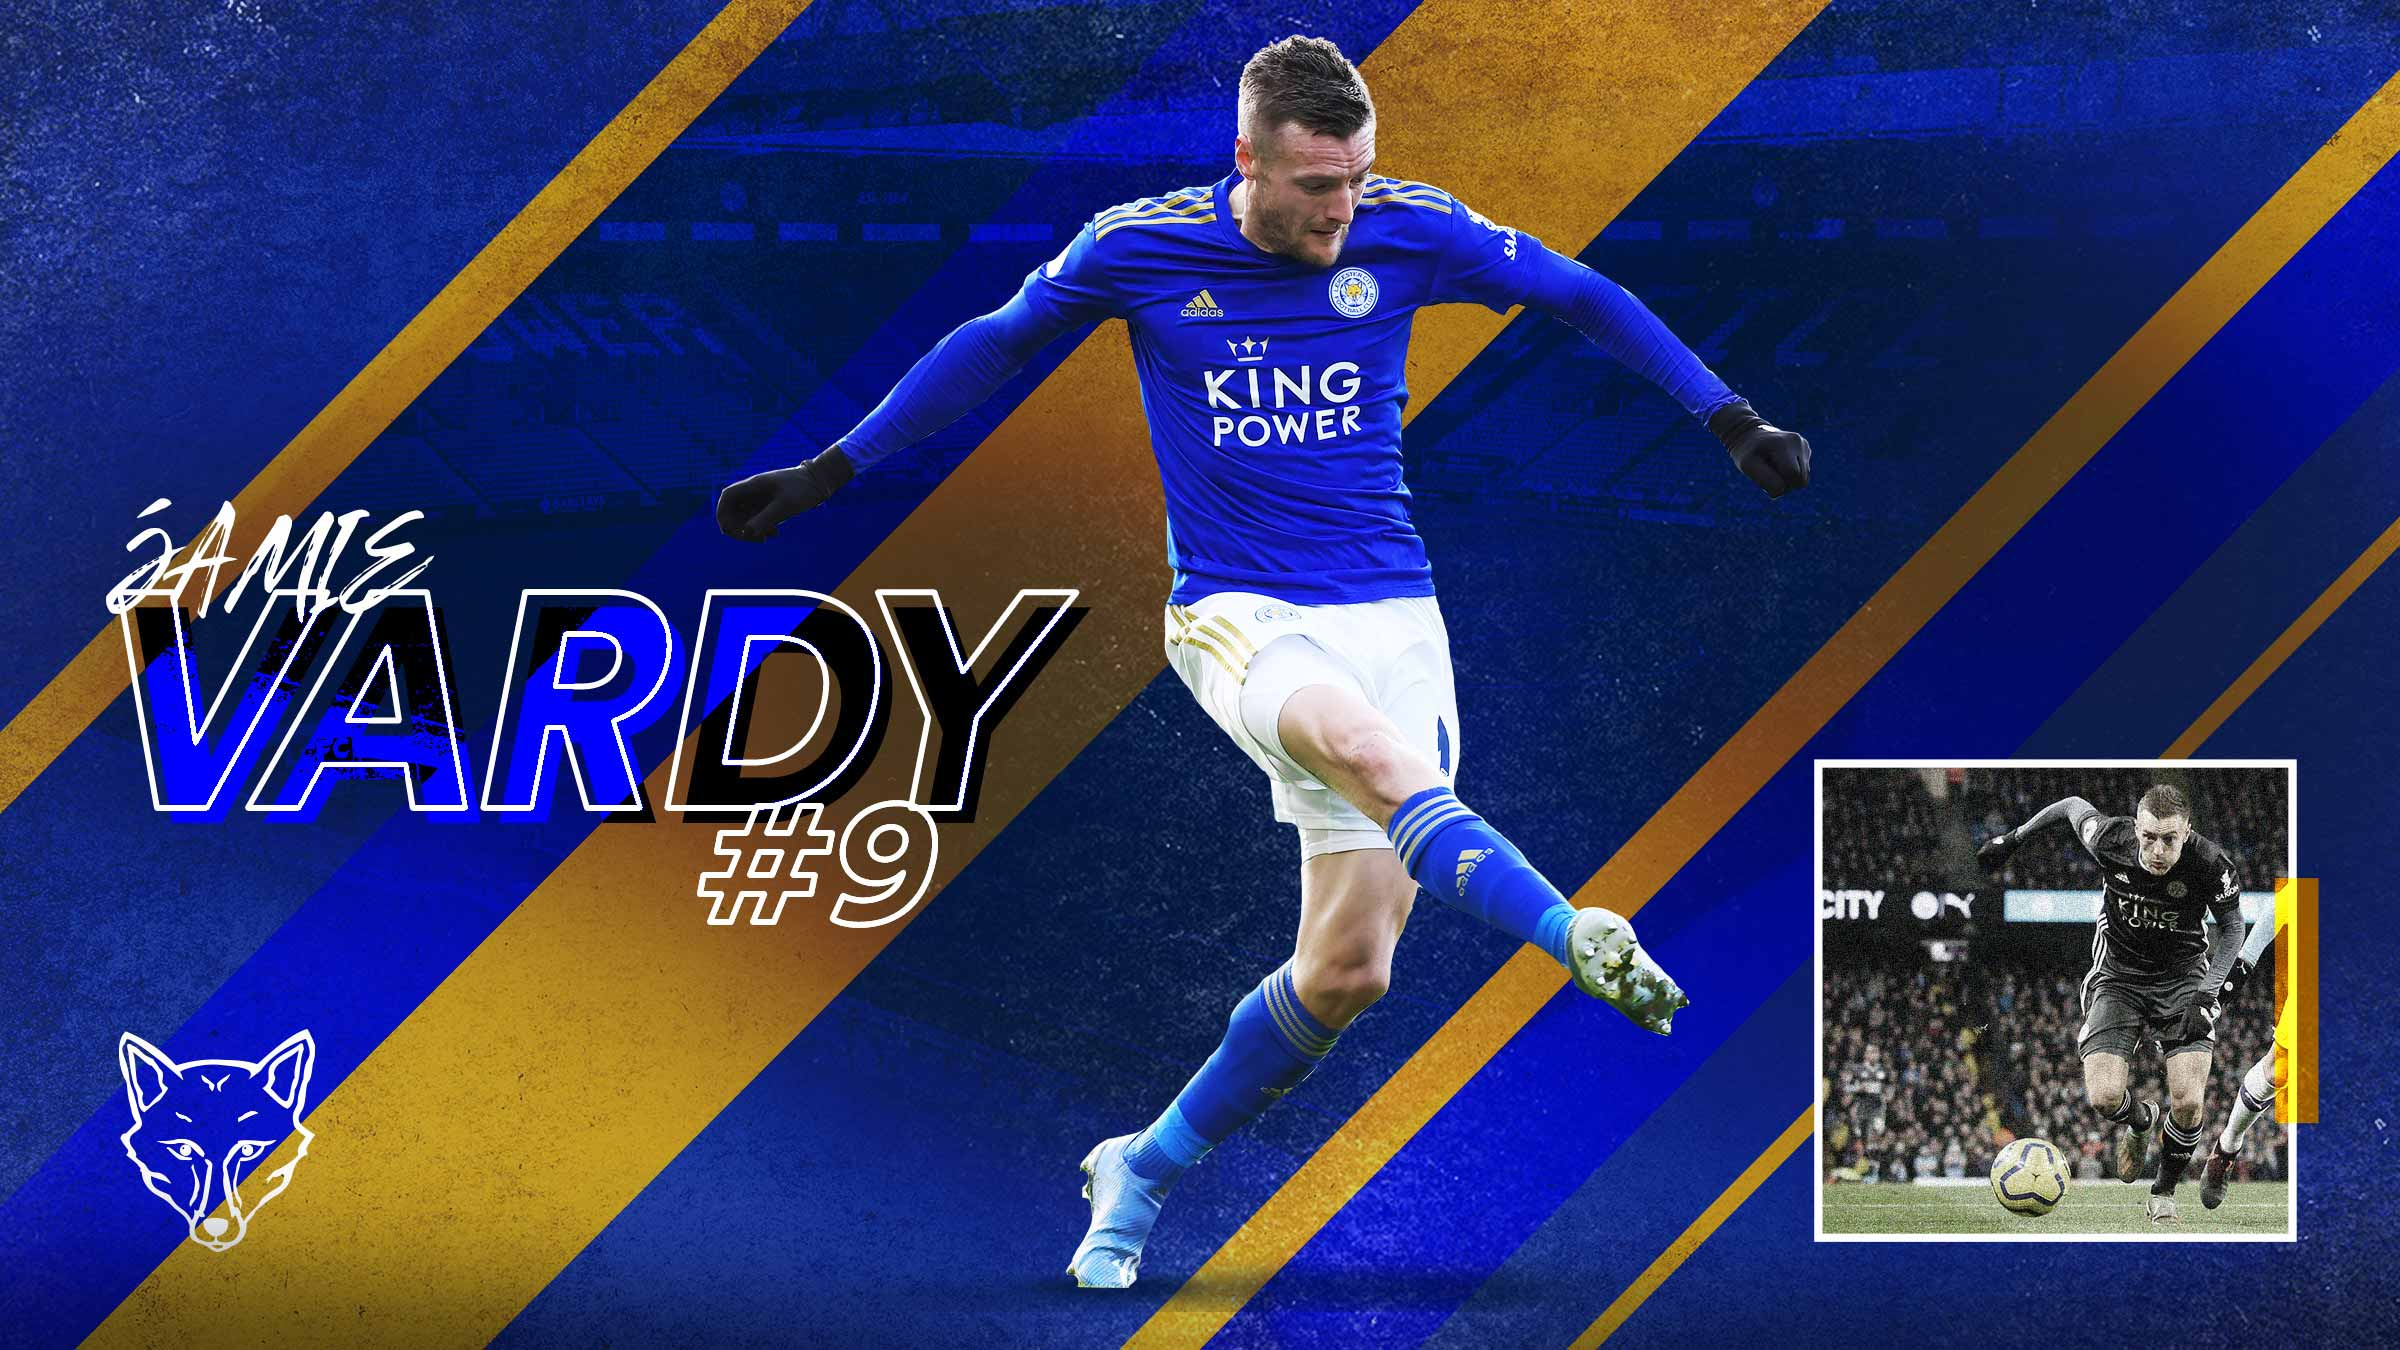 Leicester City player Jamie Vardy